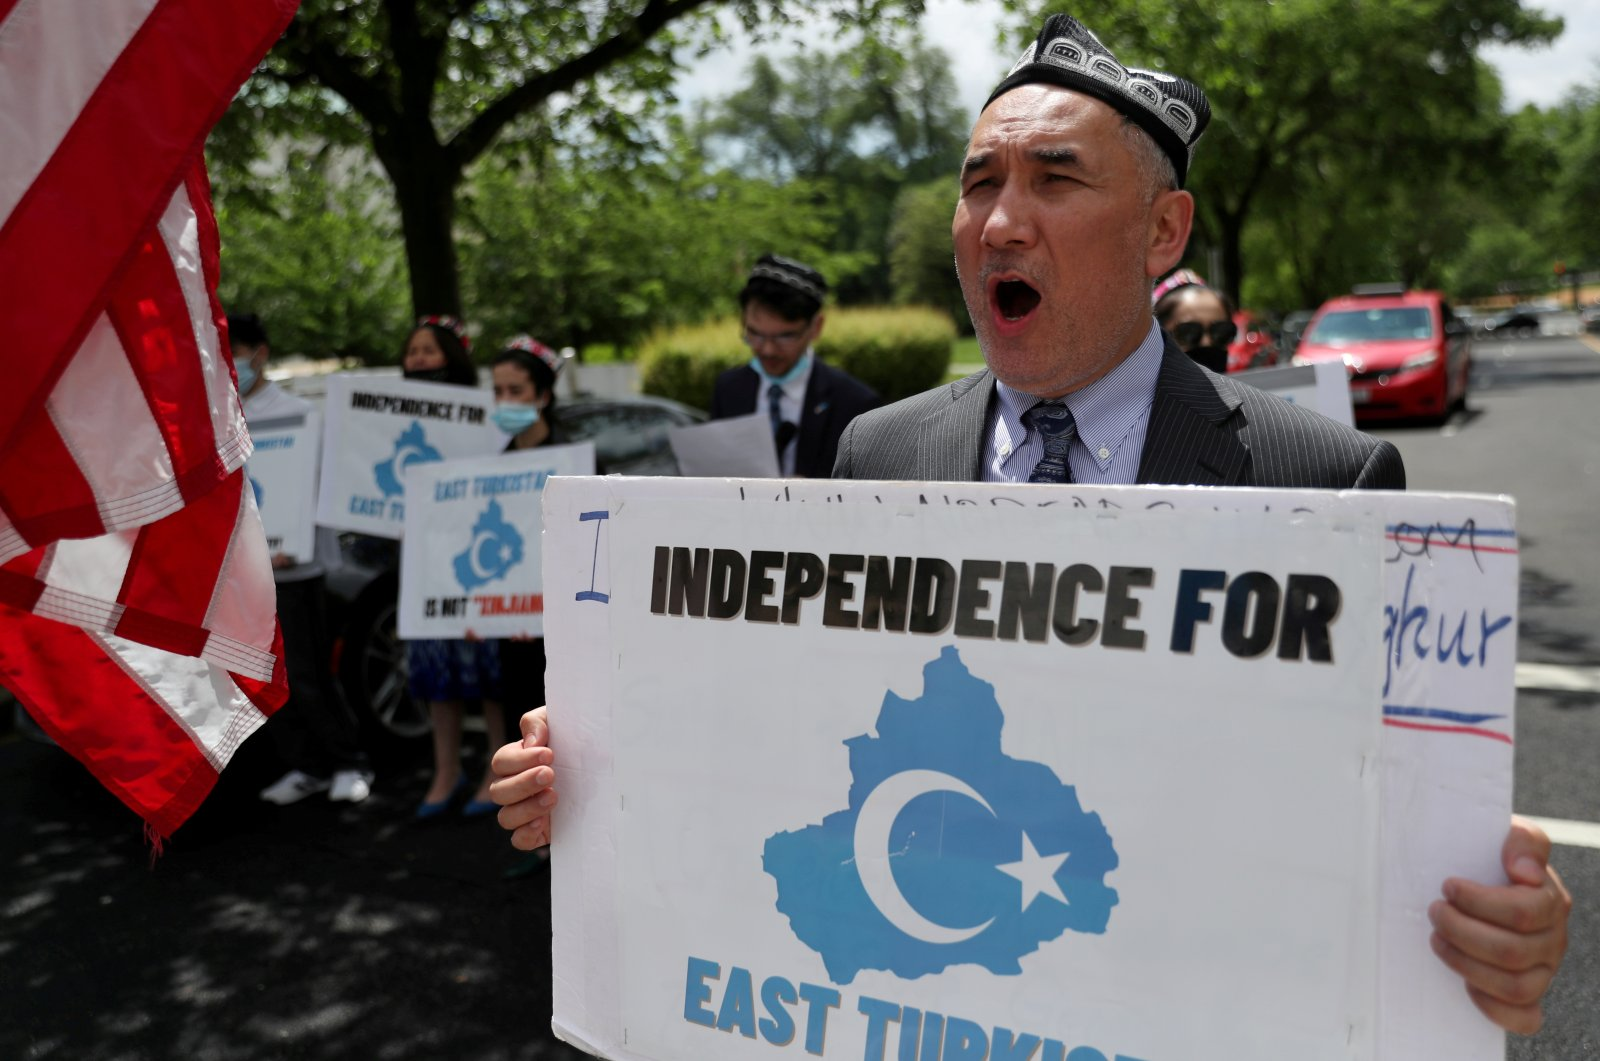 Demonstrators hold a protest in front of the U.S. State Department to commemorate Uyghur Doppa Day and to urge the U.S. and the international community to take action against China's treatment of the Uyghur people in Xinjiang, in Washington, U.S., May 5, 2021. (Reuters Photo)